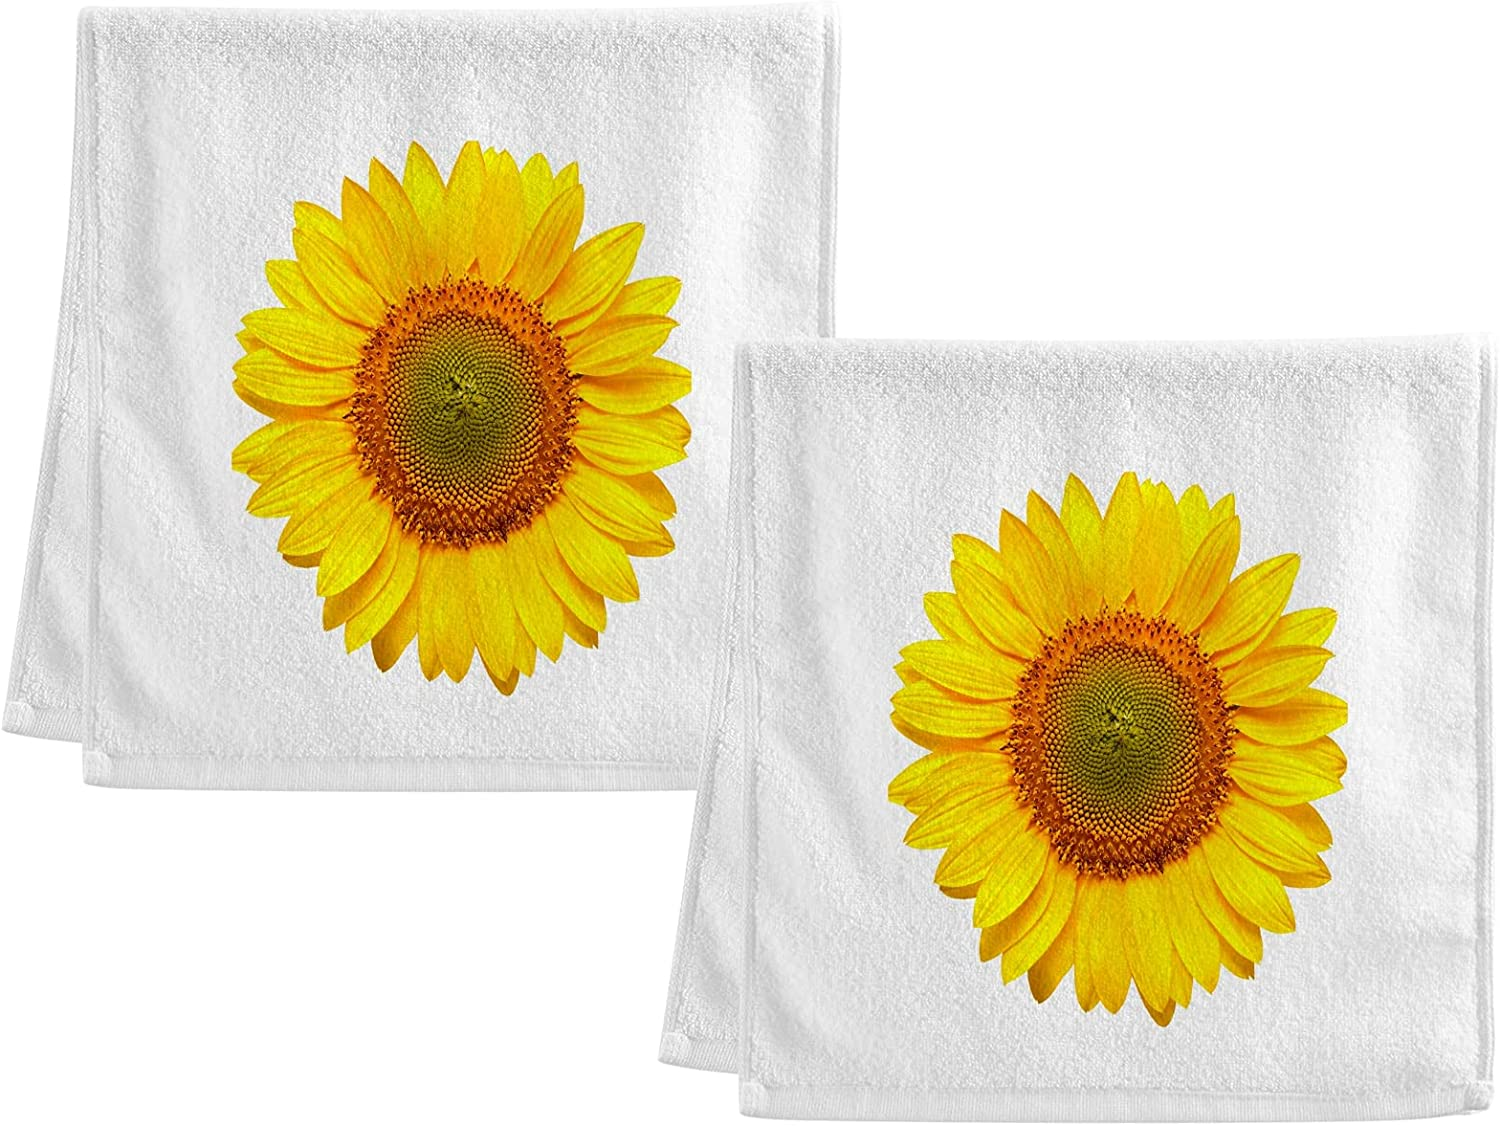 Our shop most popular ALAZA Yellow Max 77% OFF Sunflower Floral Cotton Hand 2 Towel of Hotel S Set